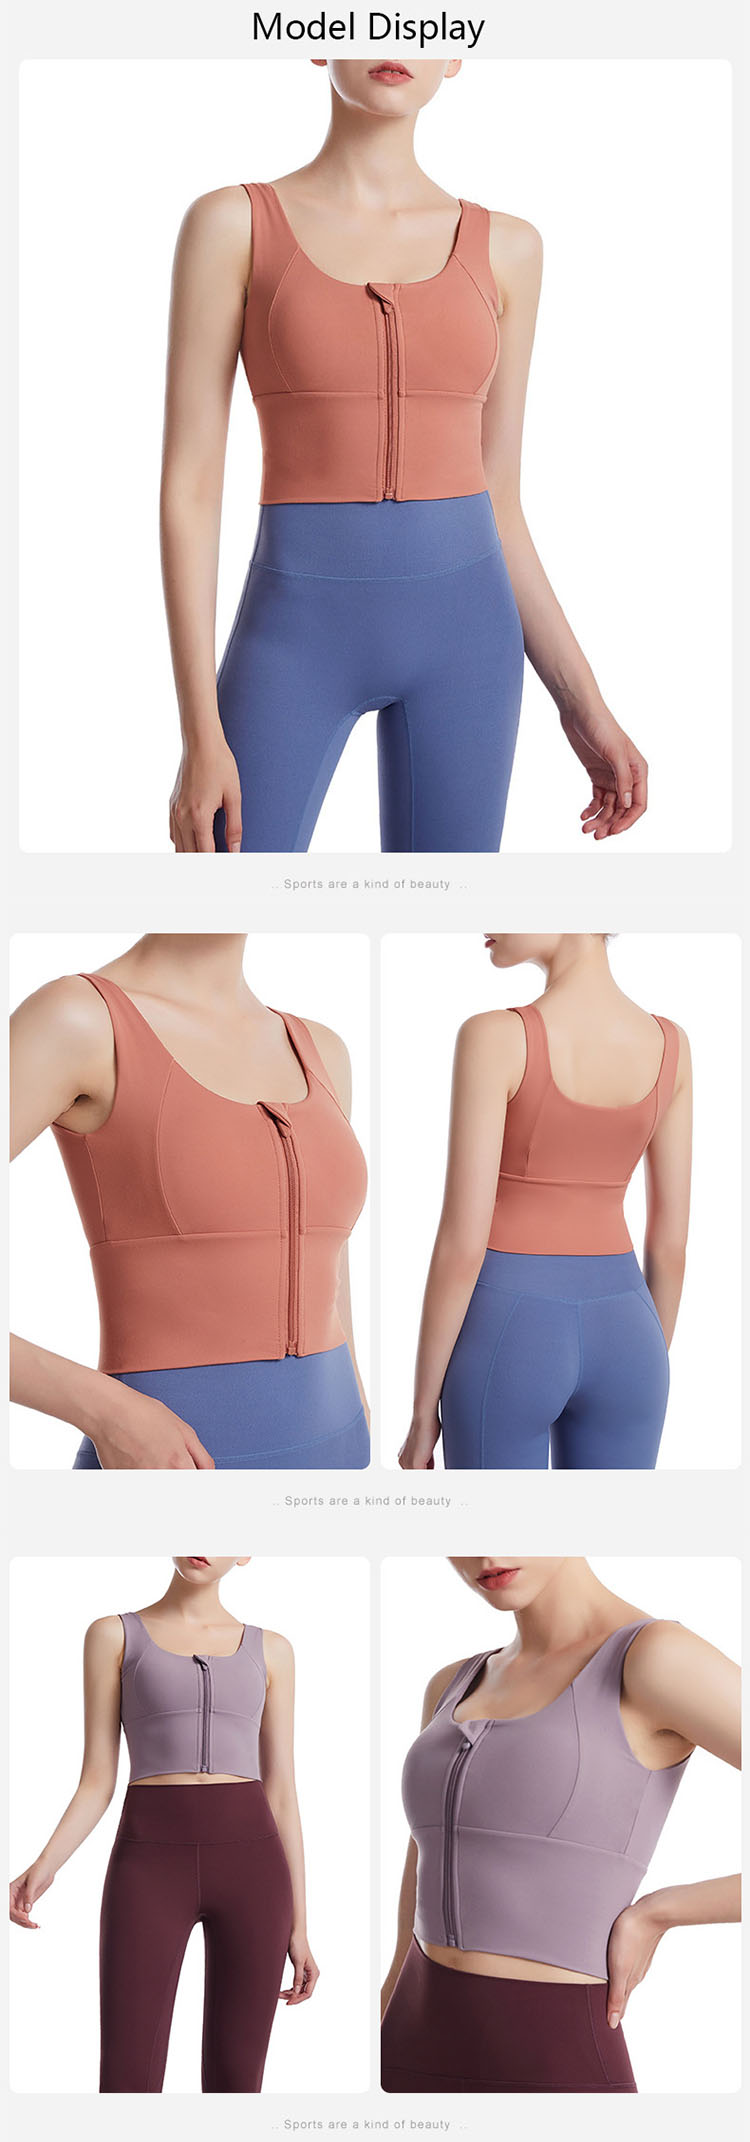 The front zipper design is easy to put on and take off, and has a fashionable sense.